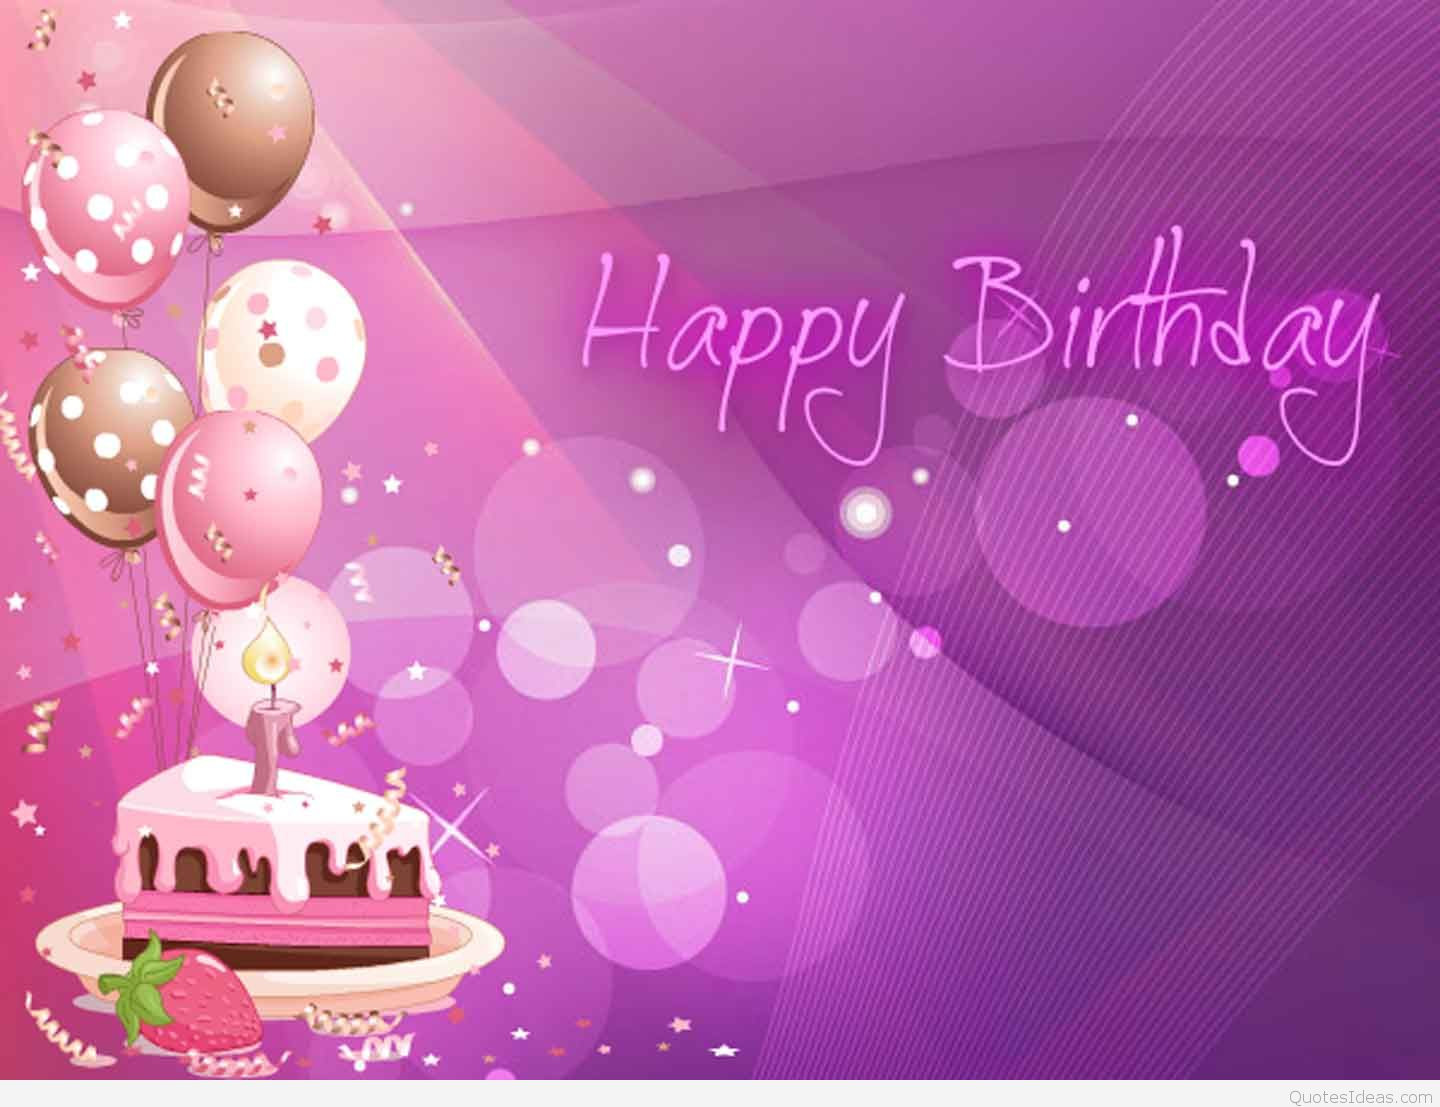 Best ideas about Free Happy Birthday Wishes . Save or Pin Cute Happy Birthday wallpaper hd Now.